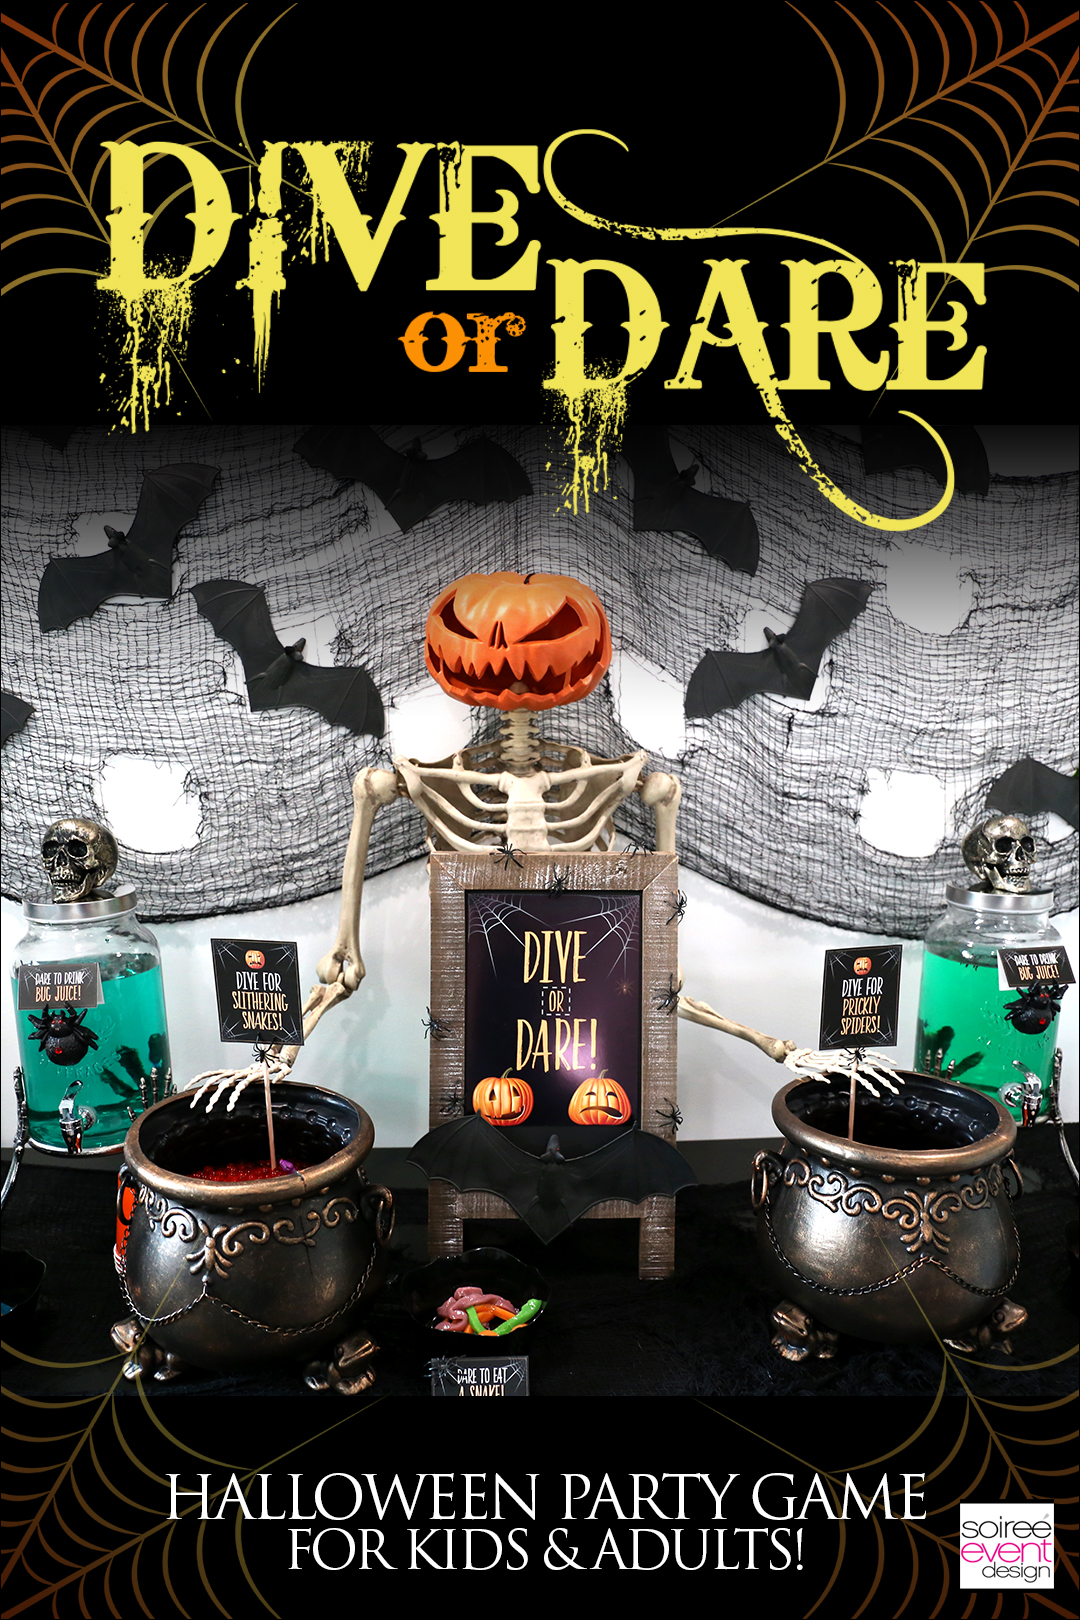 Halloween Party Games - Dive or Dare- Soiree Event Design